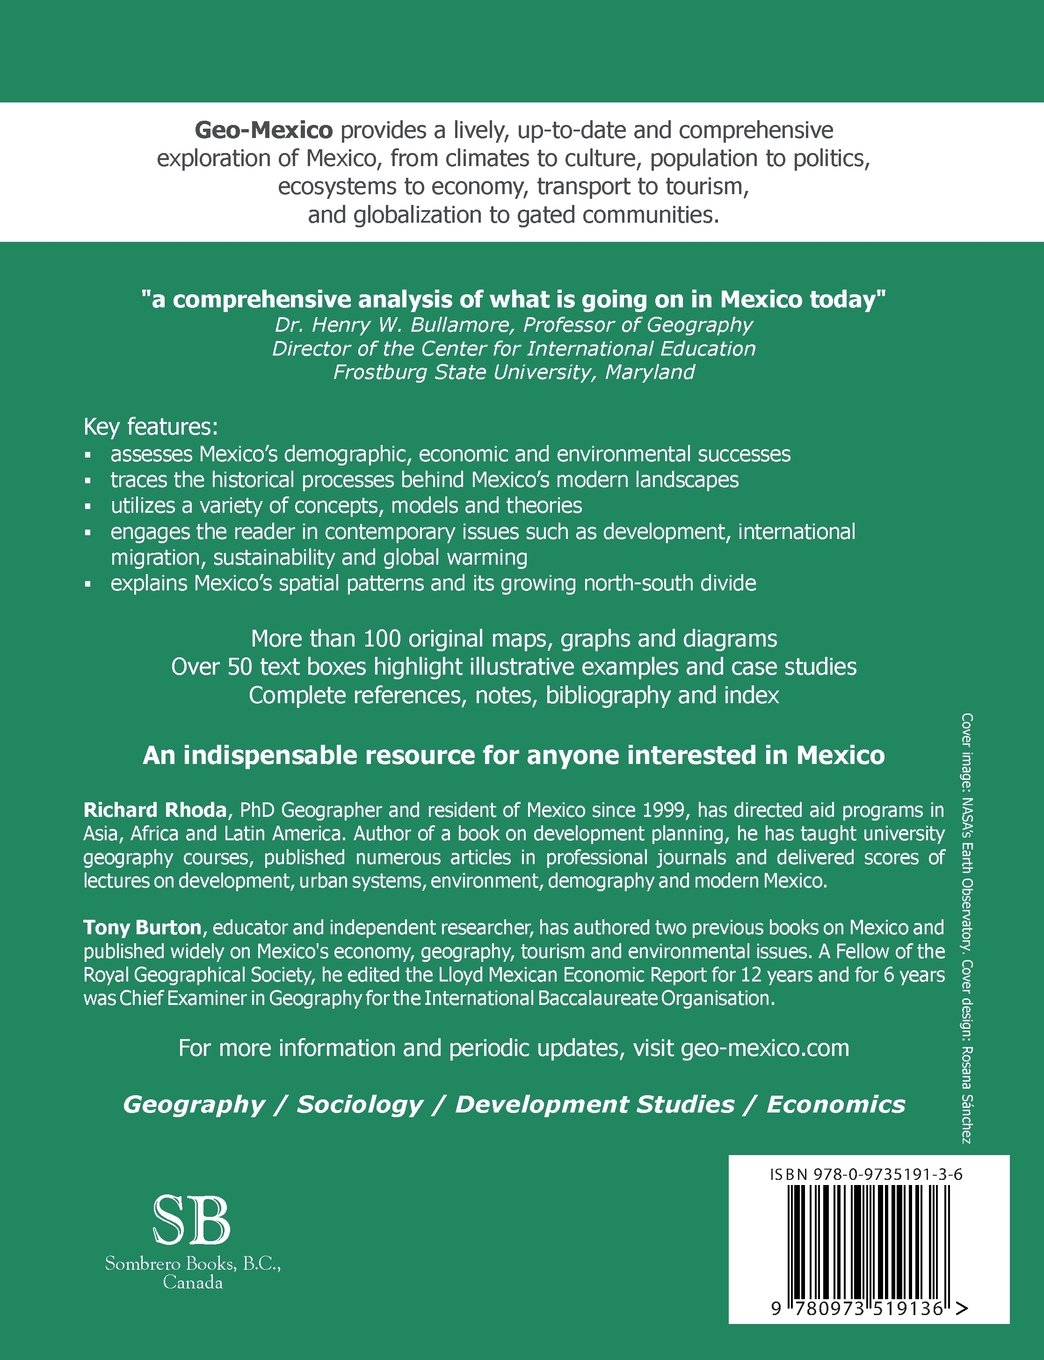 geo mexico the geography and dynamics of modern mexico richard